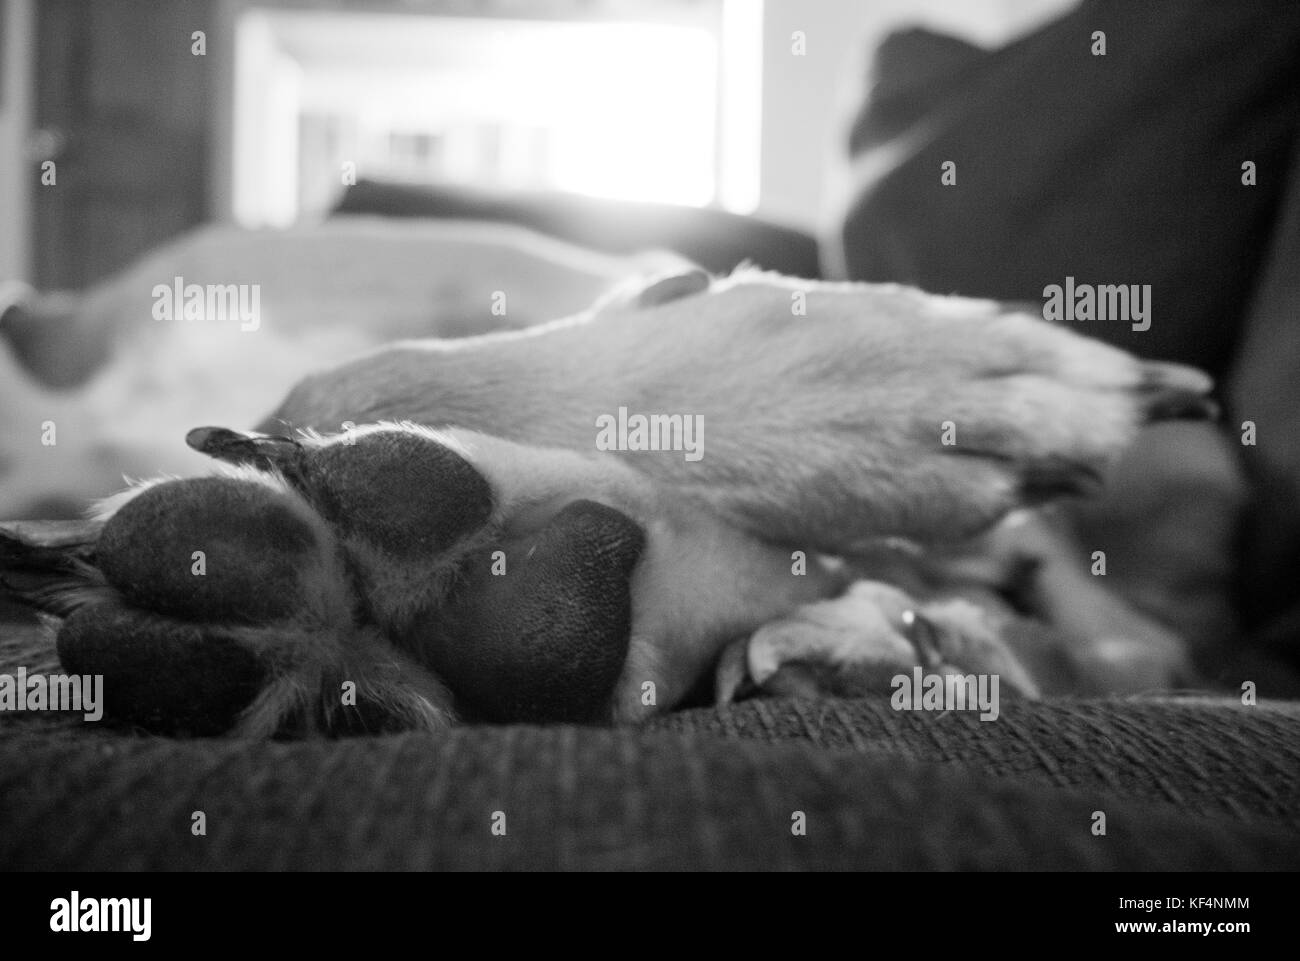 Black and white close up of a dog's paws on a sofa - Stock Image